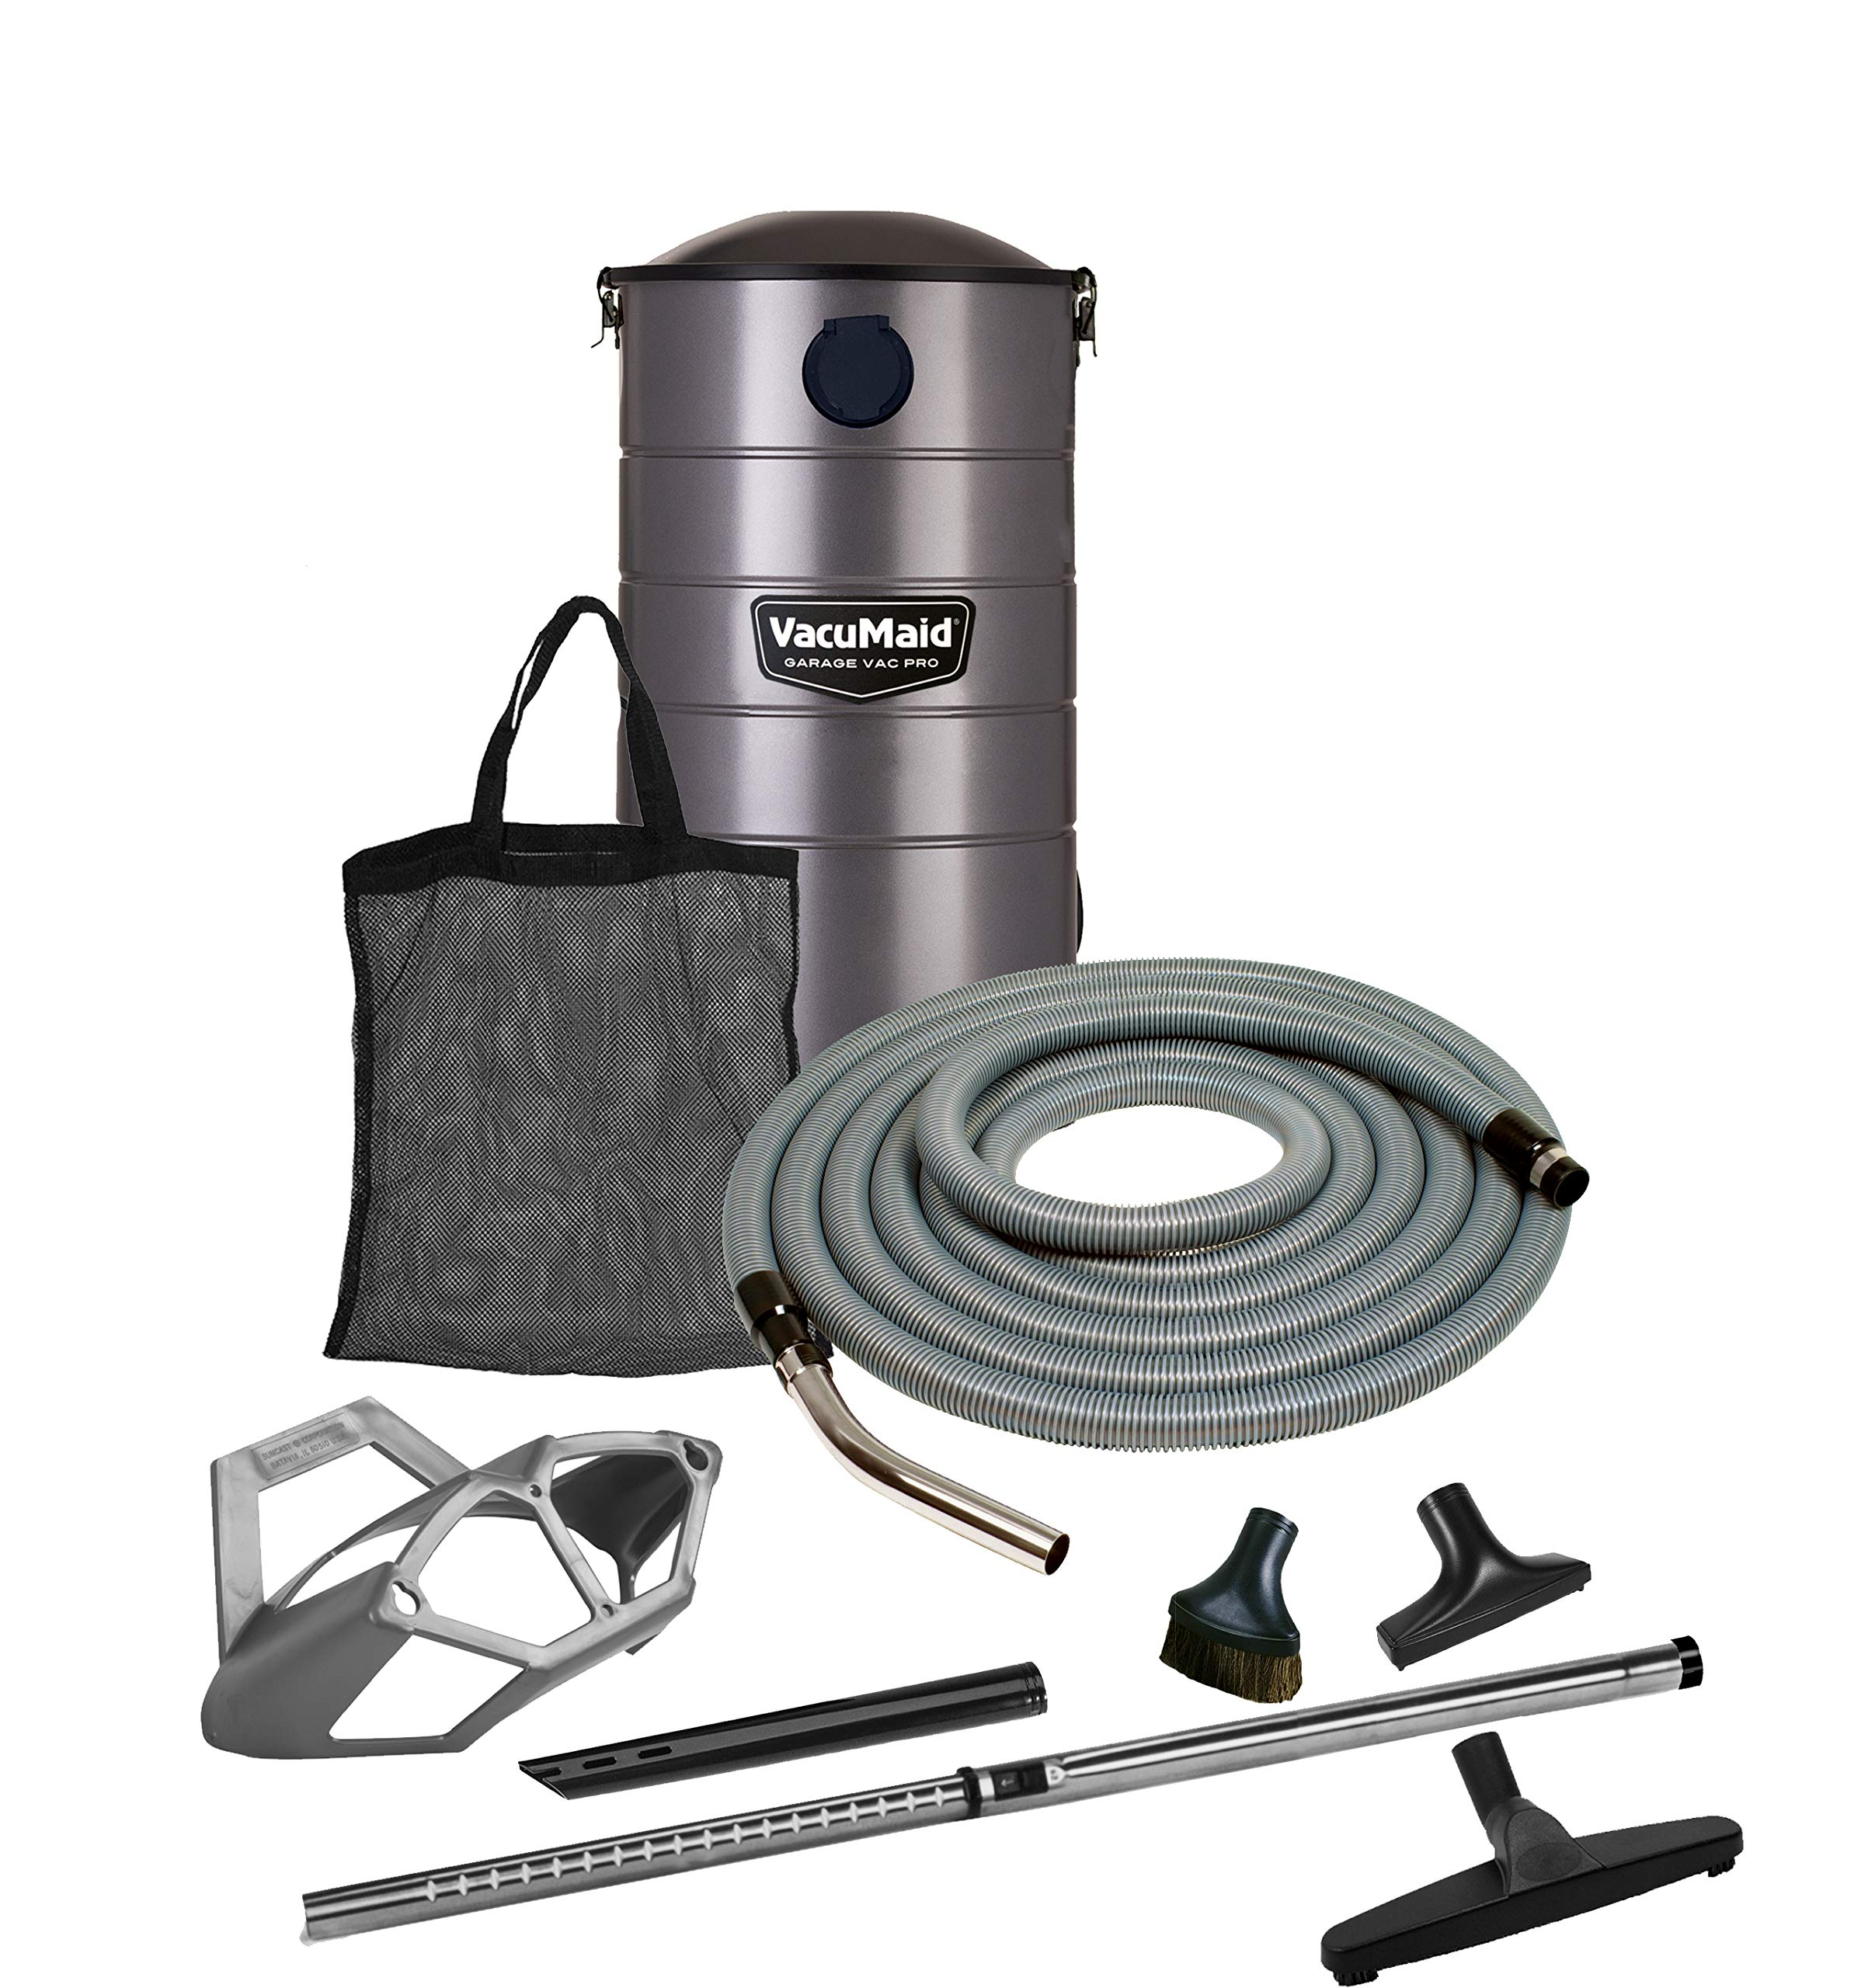 VacuMaid GV50PRO Wall Mounted Garage and Car Vacuum with 50 ft. Hose and Tools.